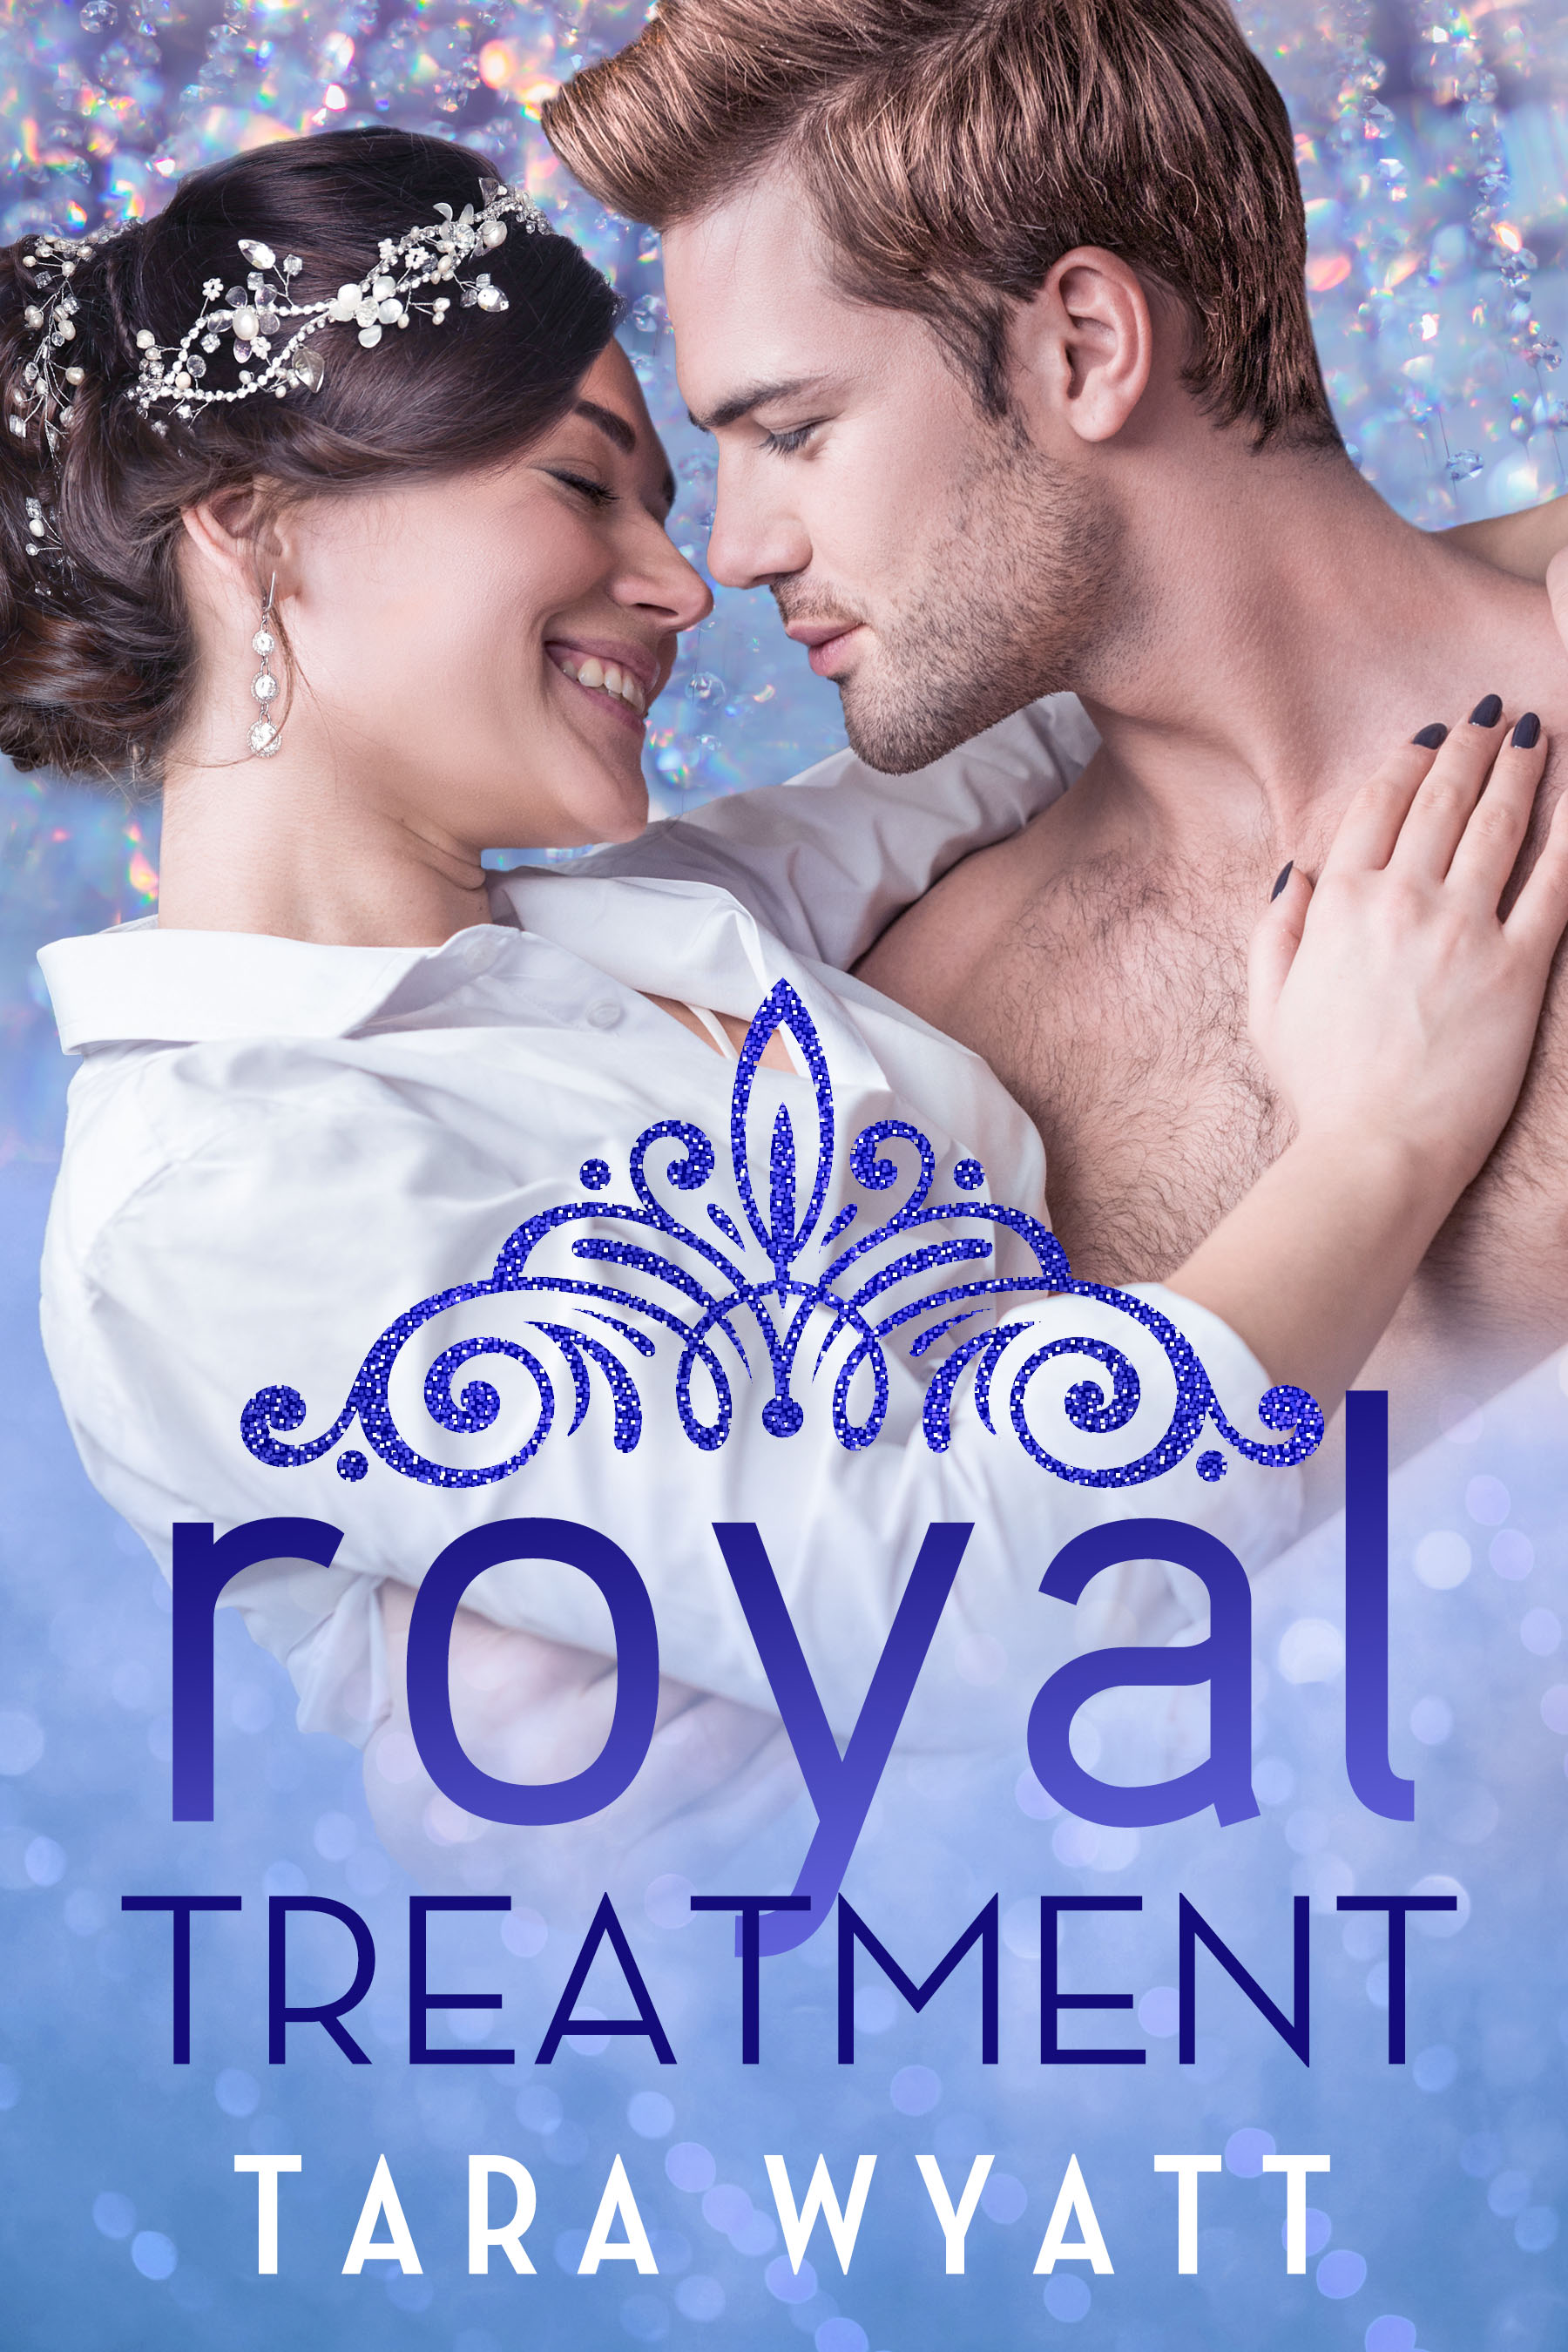 Royal-Treatment-highres.jpg